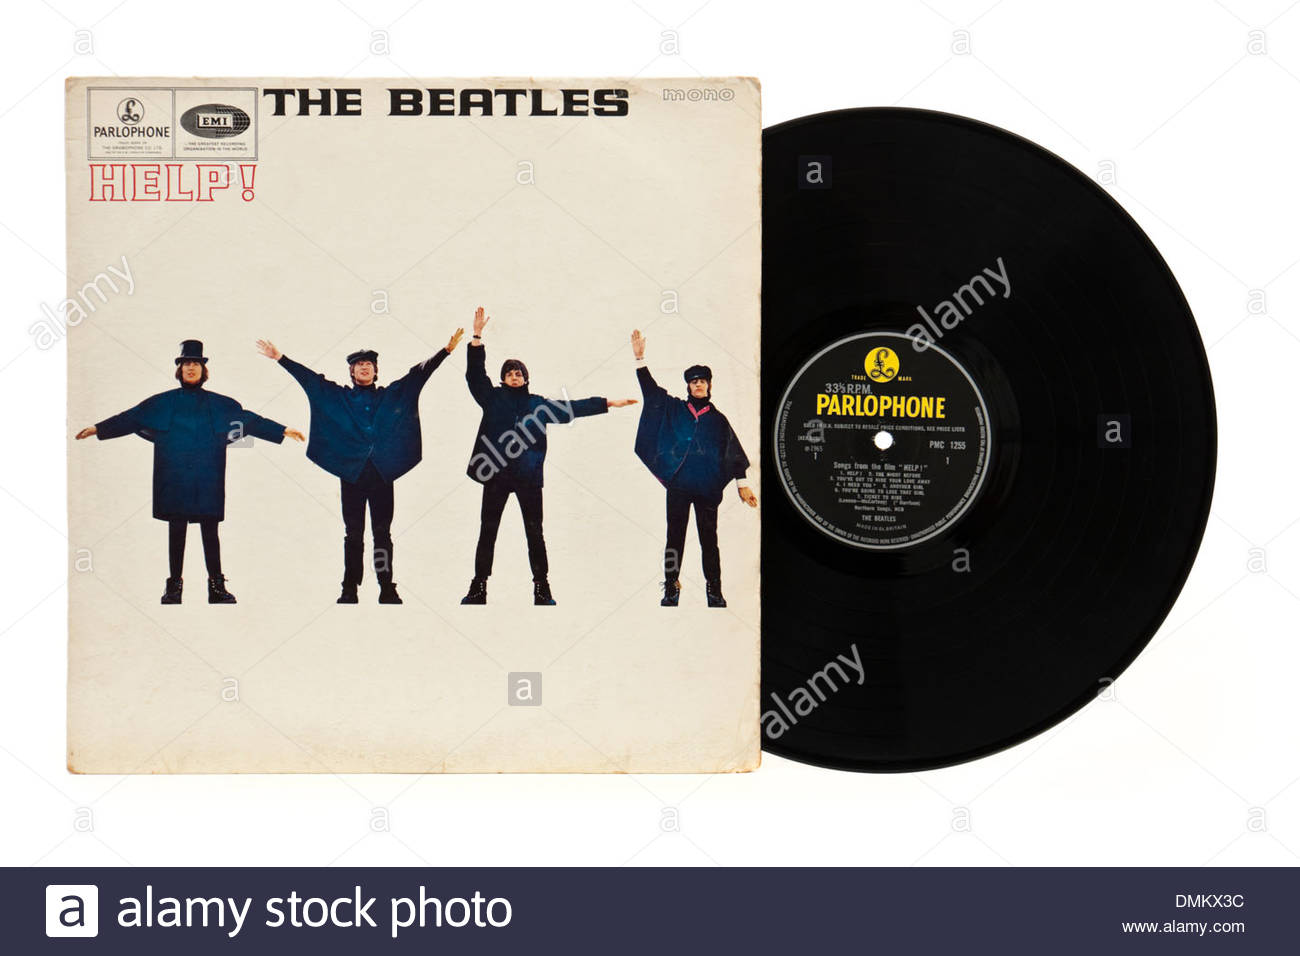 'Help' LP by The Beatles, the original 1965 mono version - Parlophone PMC1255 (first pressing). - Stock Image